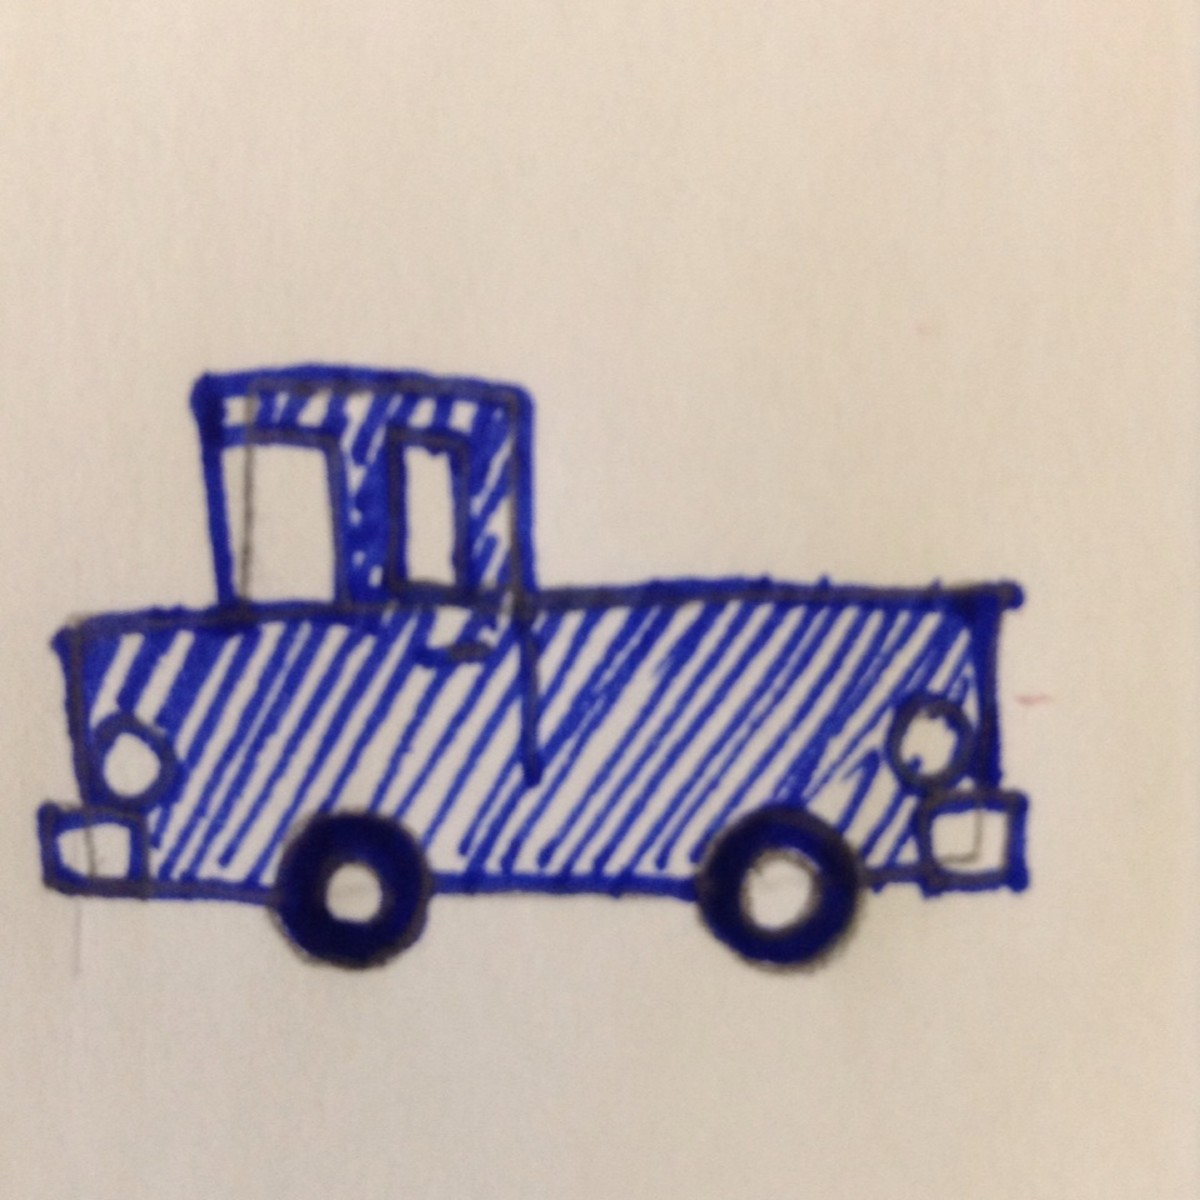 How to draw a pickup truck using just shapes.